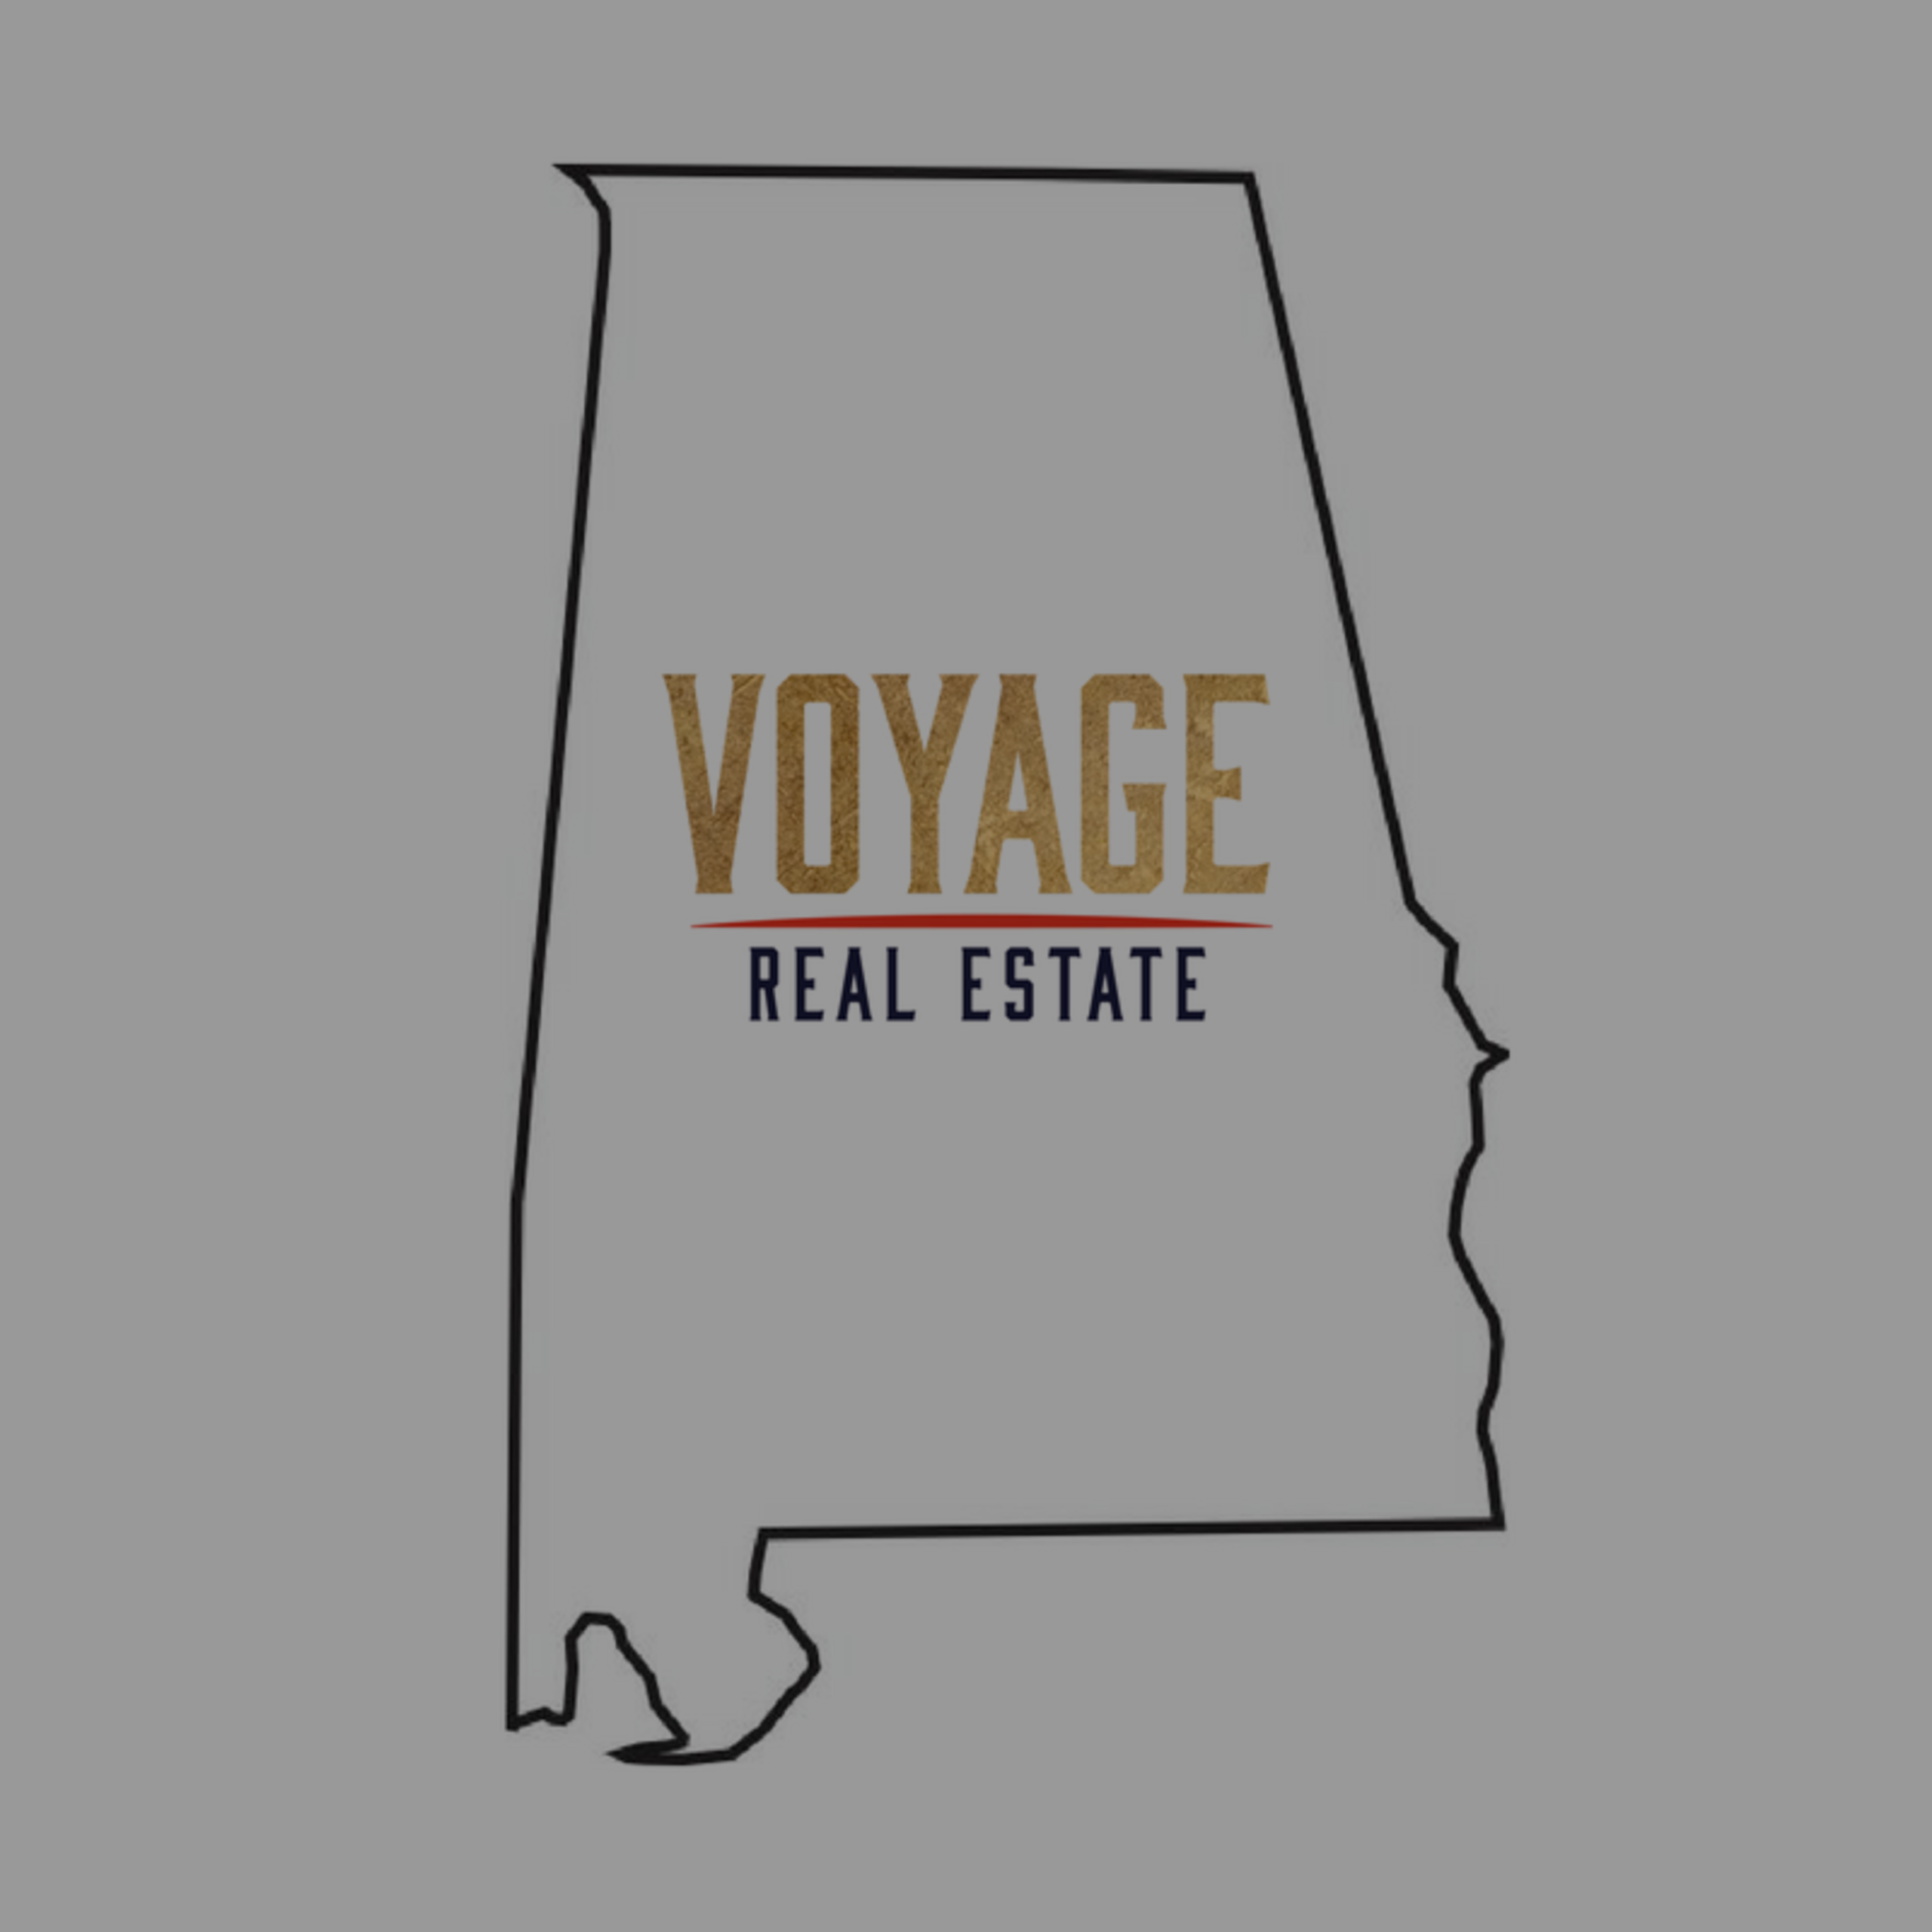 In October, Voyage Real Estate is making moves…